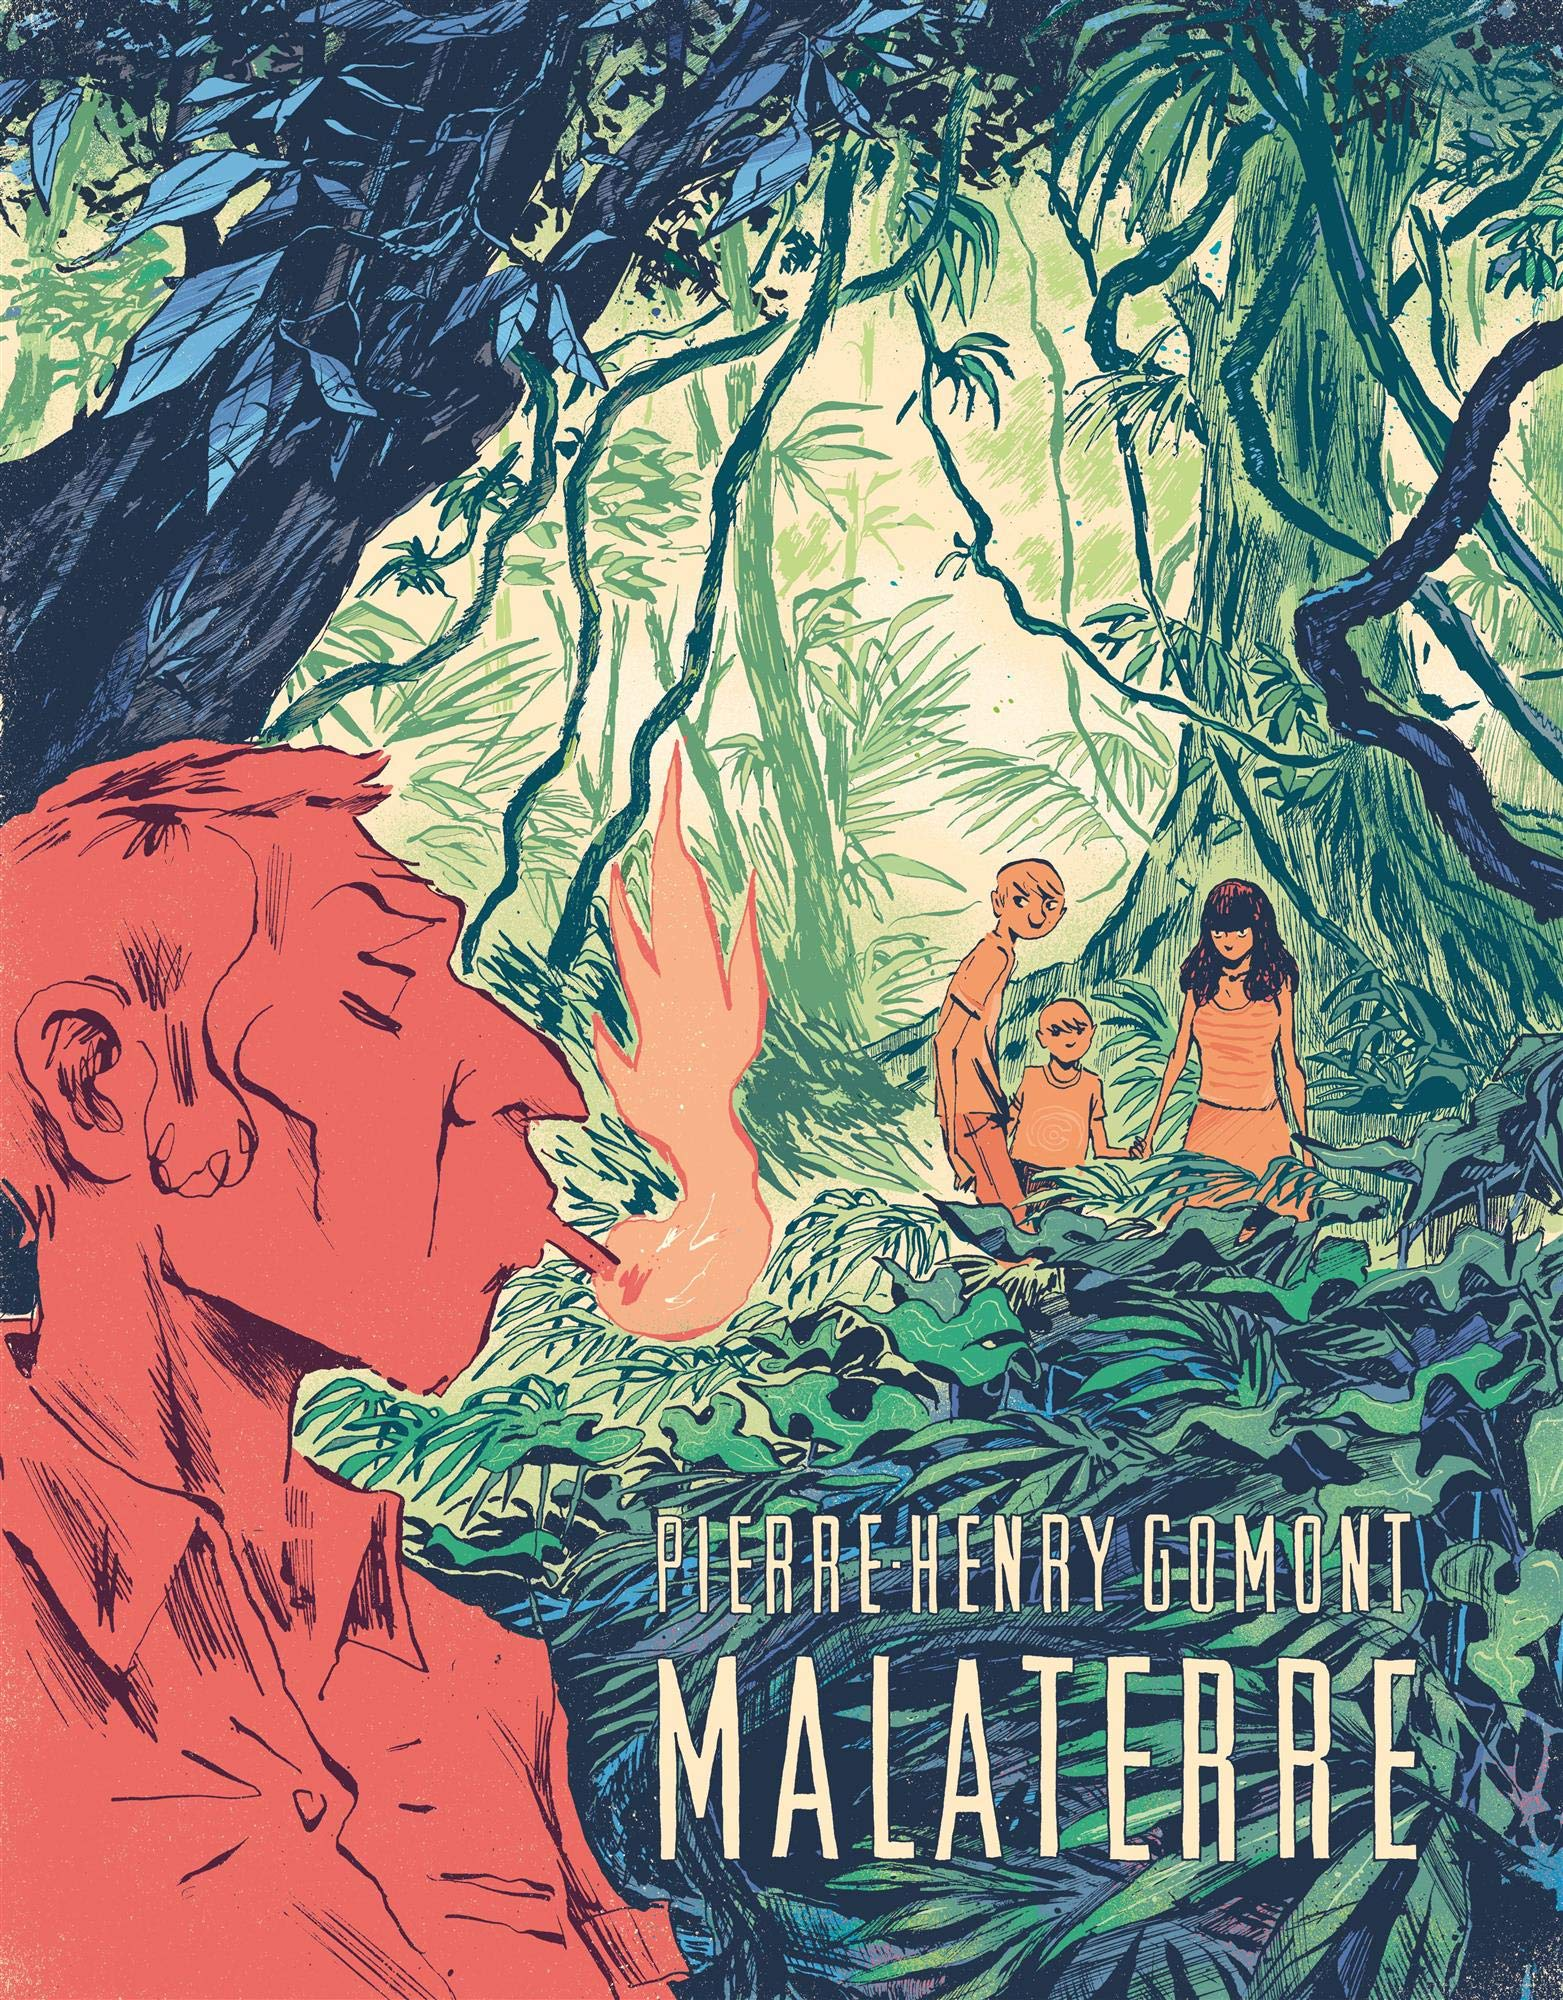 Malaterre - tome 0 - Malaterre - One-shot Album – 14 septembre 2018 Gomont Pierre-Henry Dargaud 2505071853 Aventure